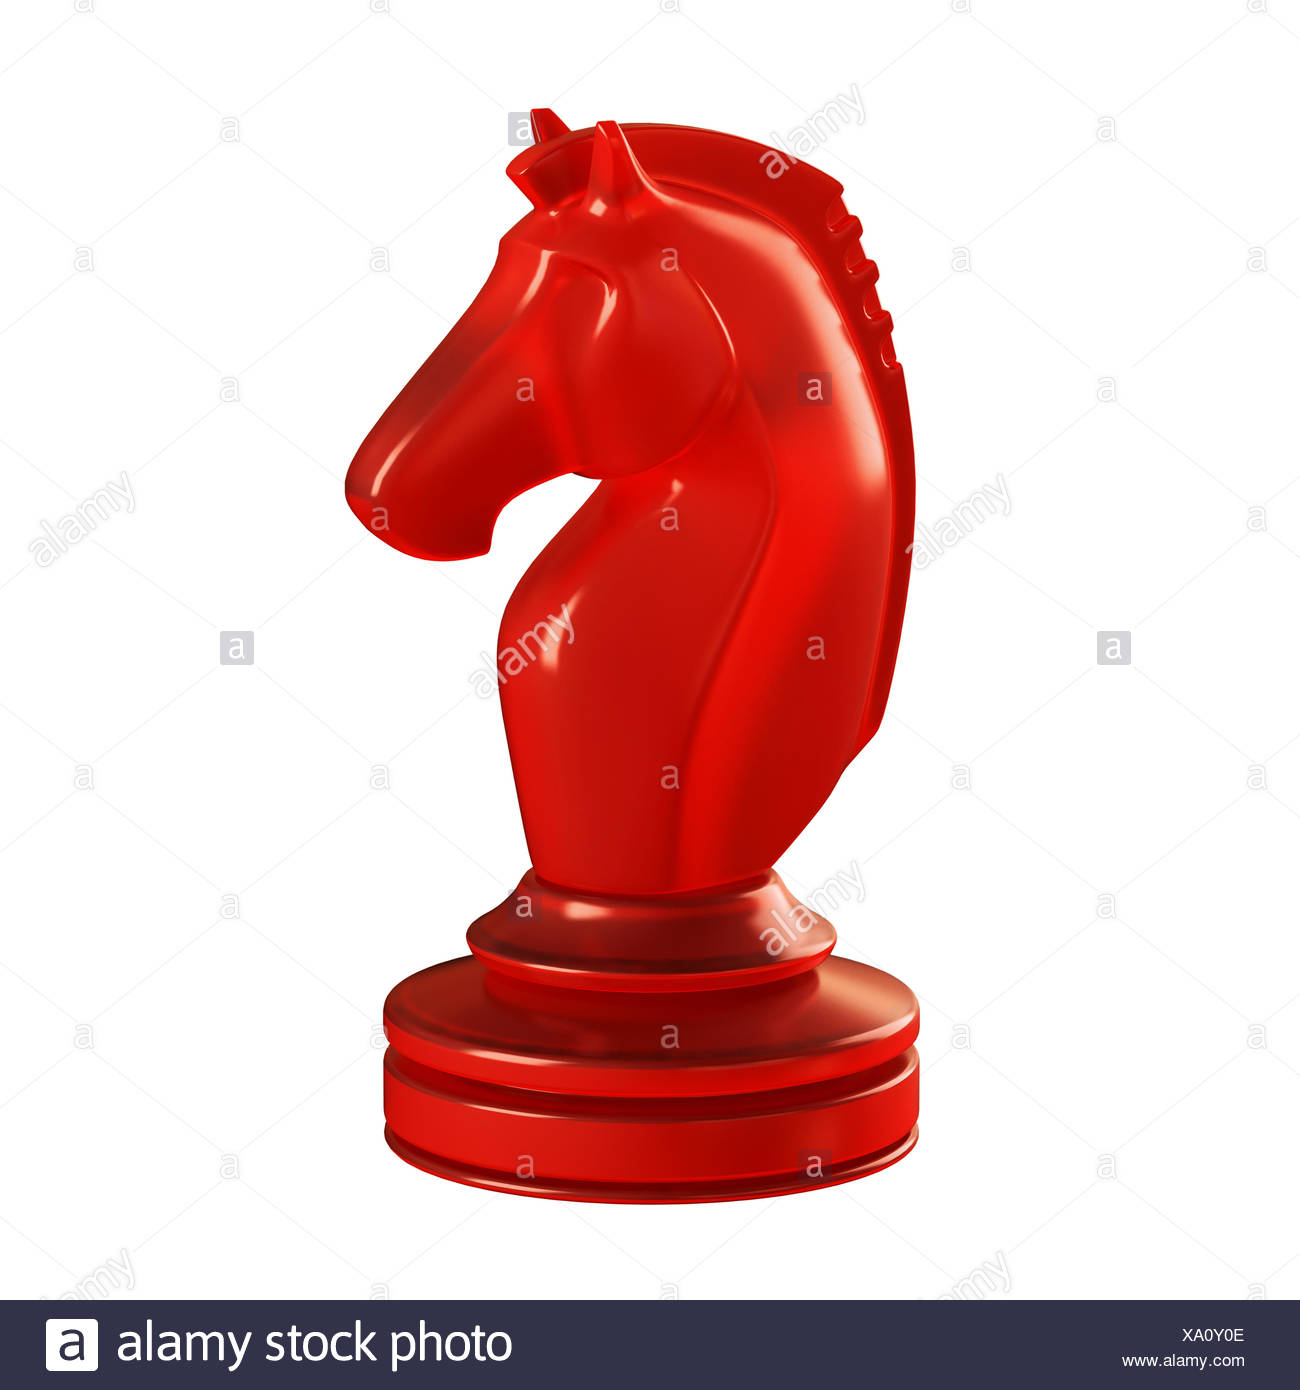 Knight Chess Piece Illustration Stock Photo Alamy